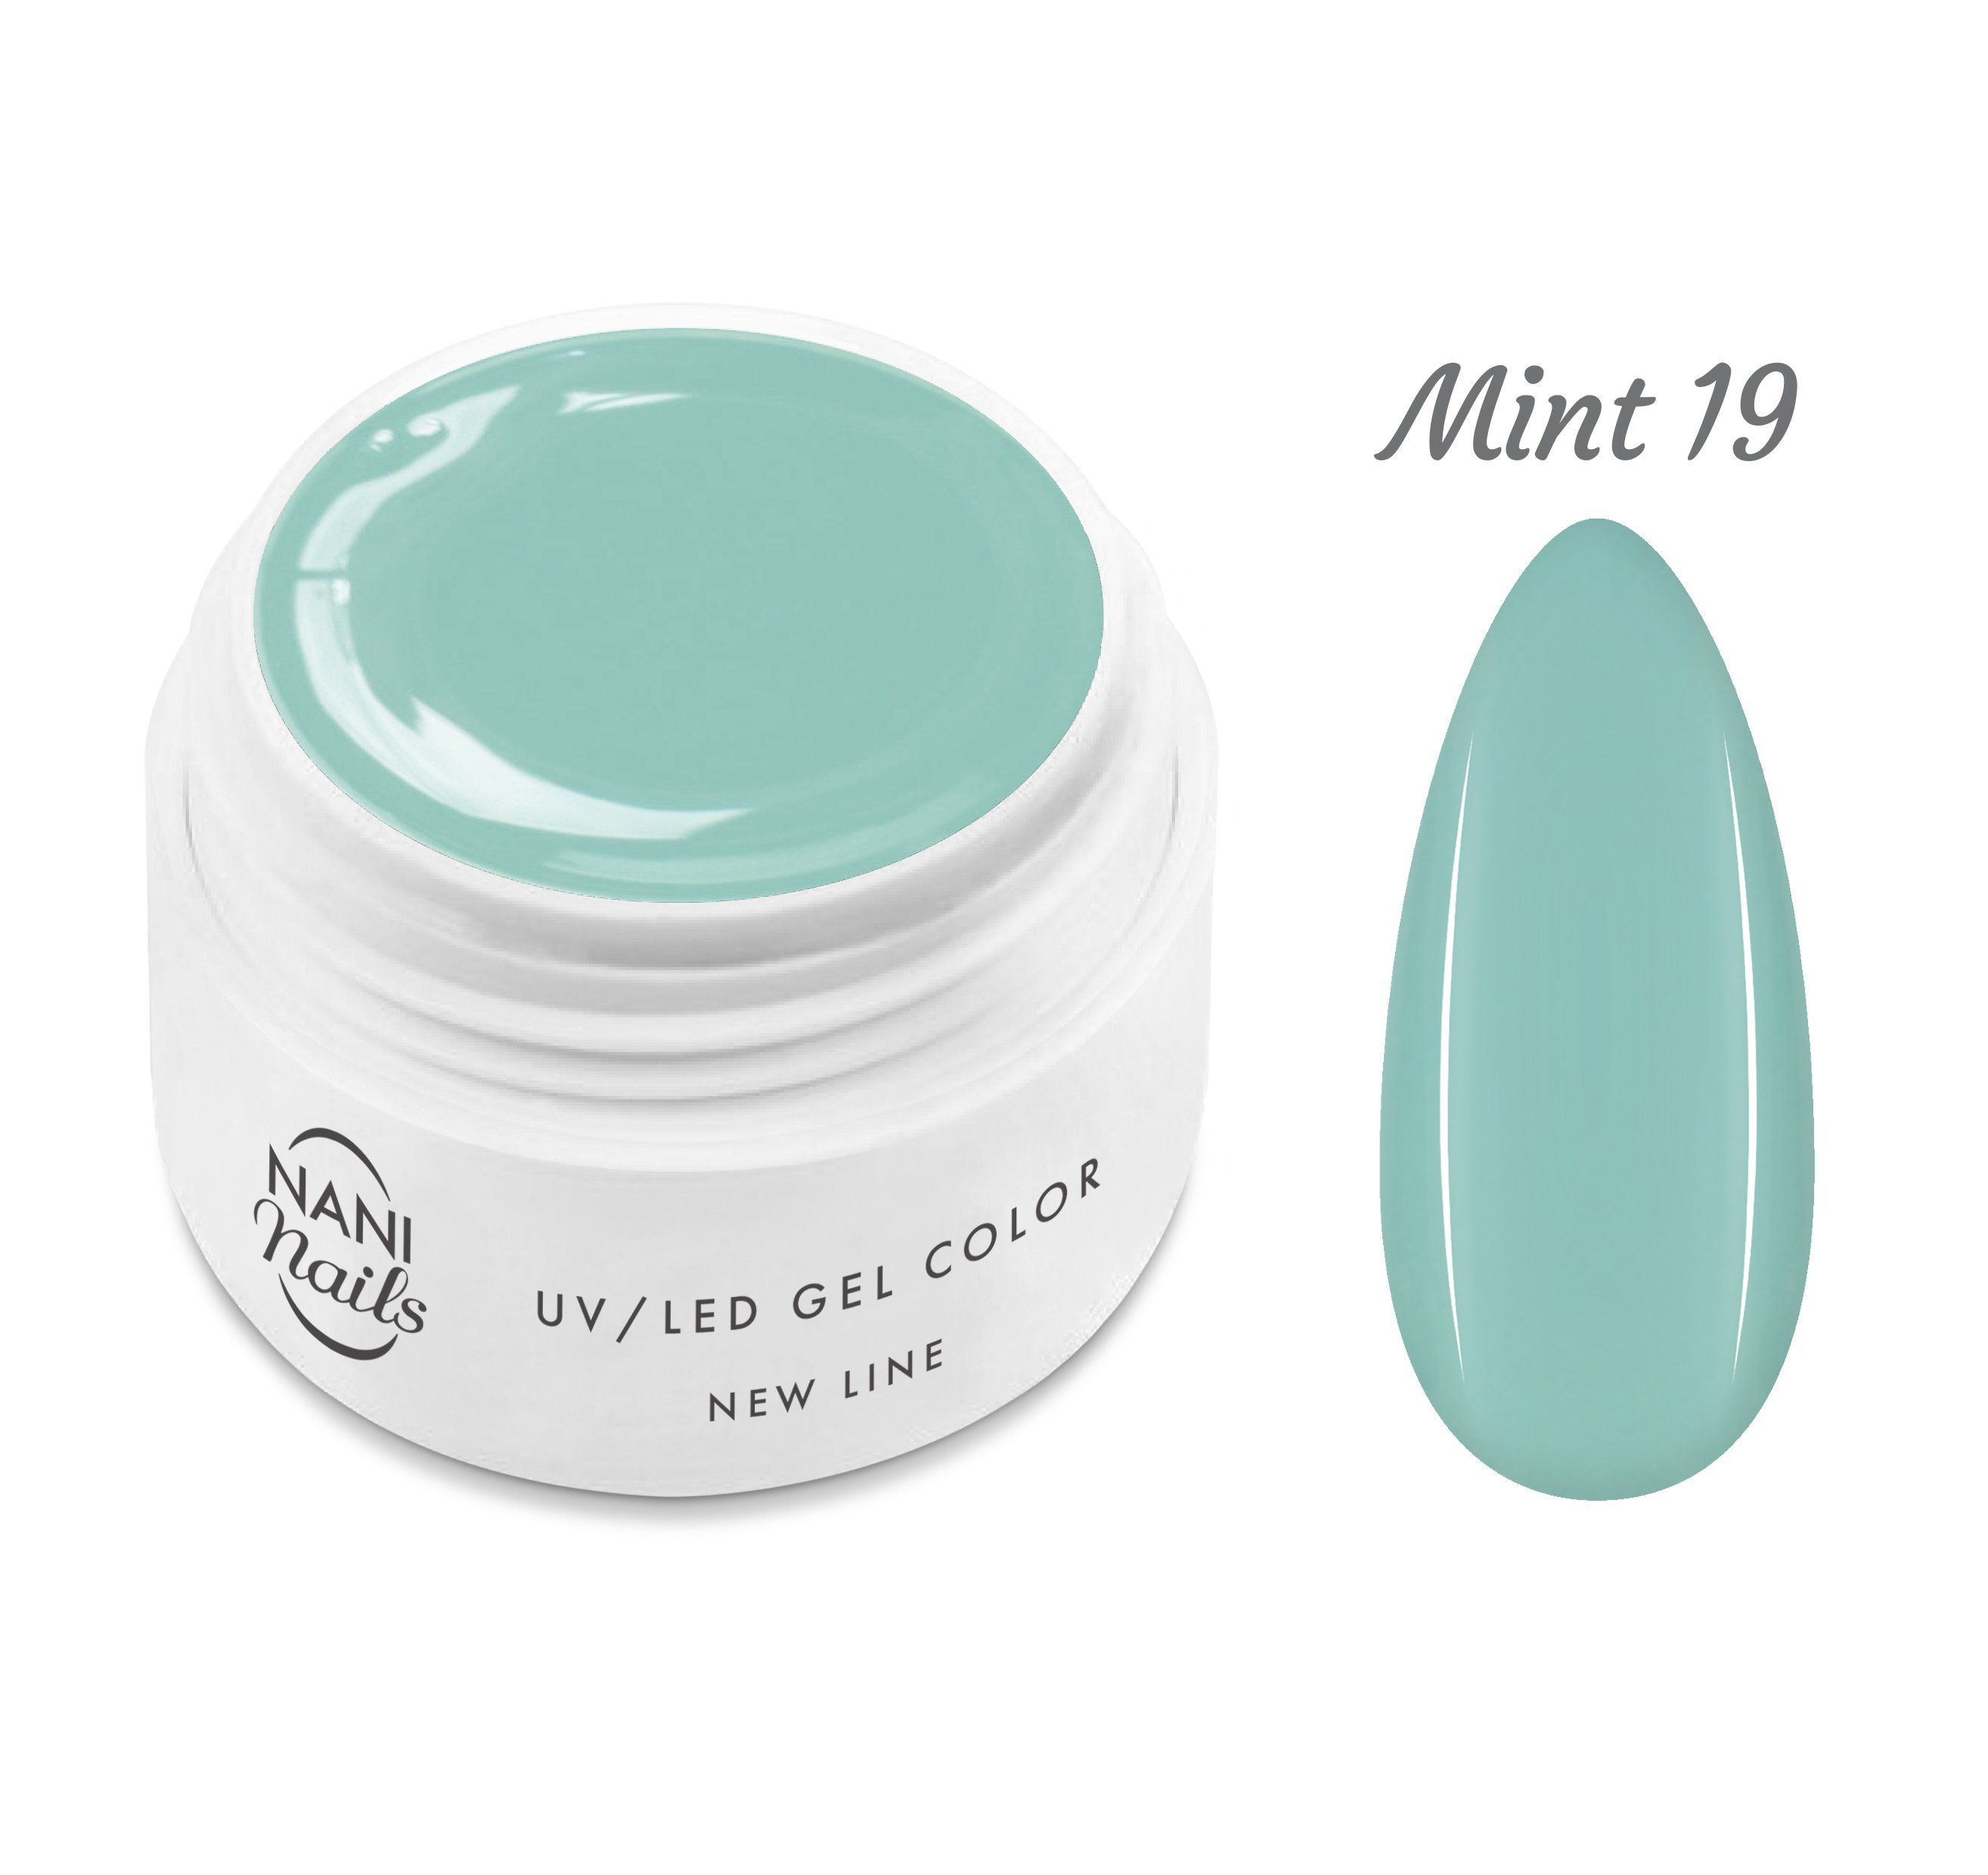 NANI UV gél New Line 5 ml - Mint